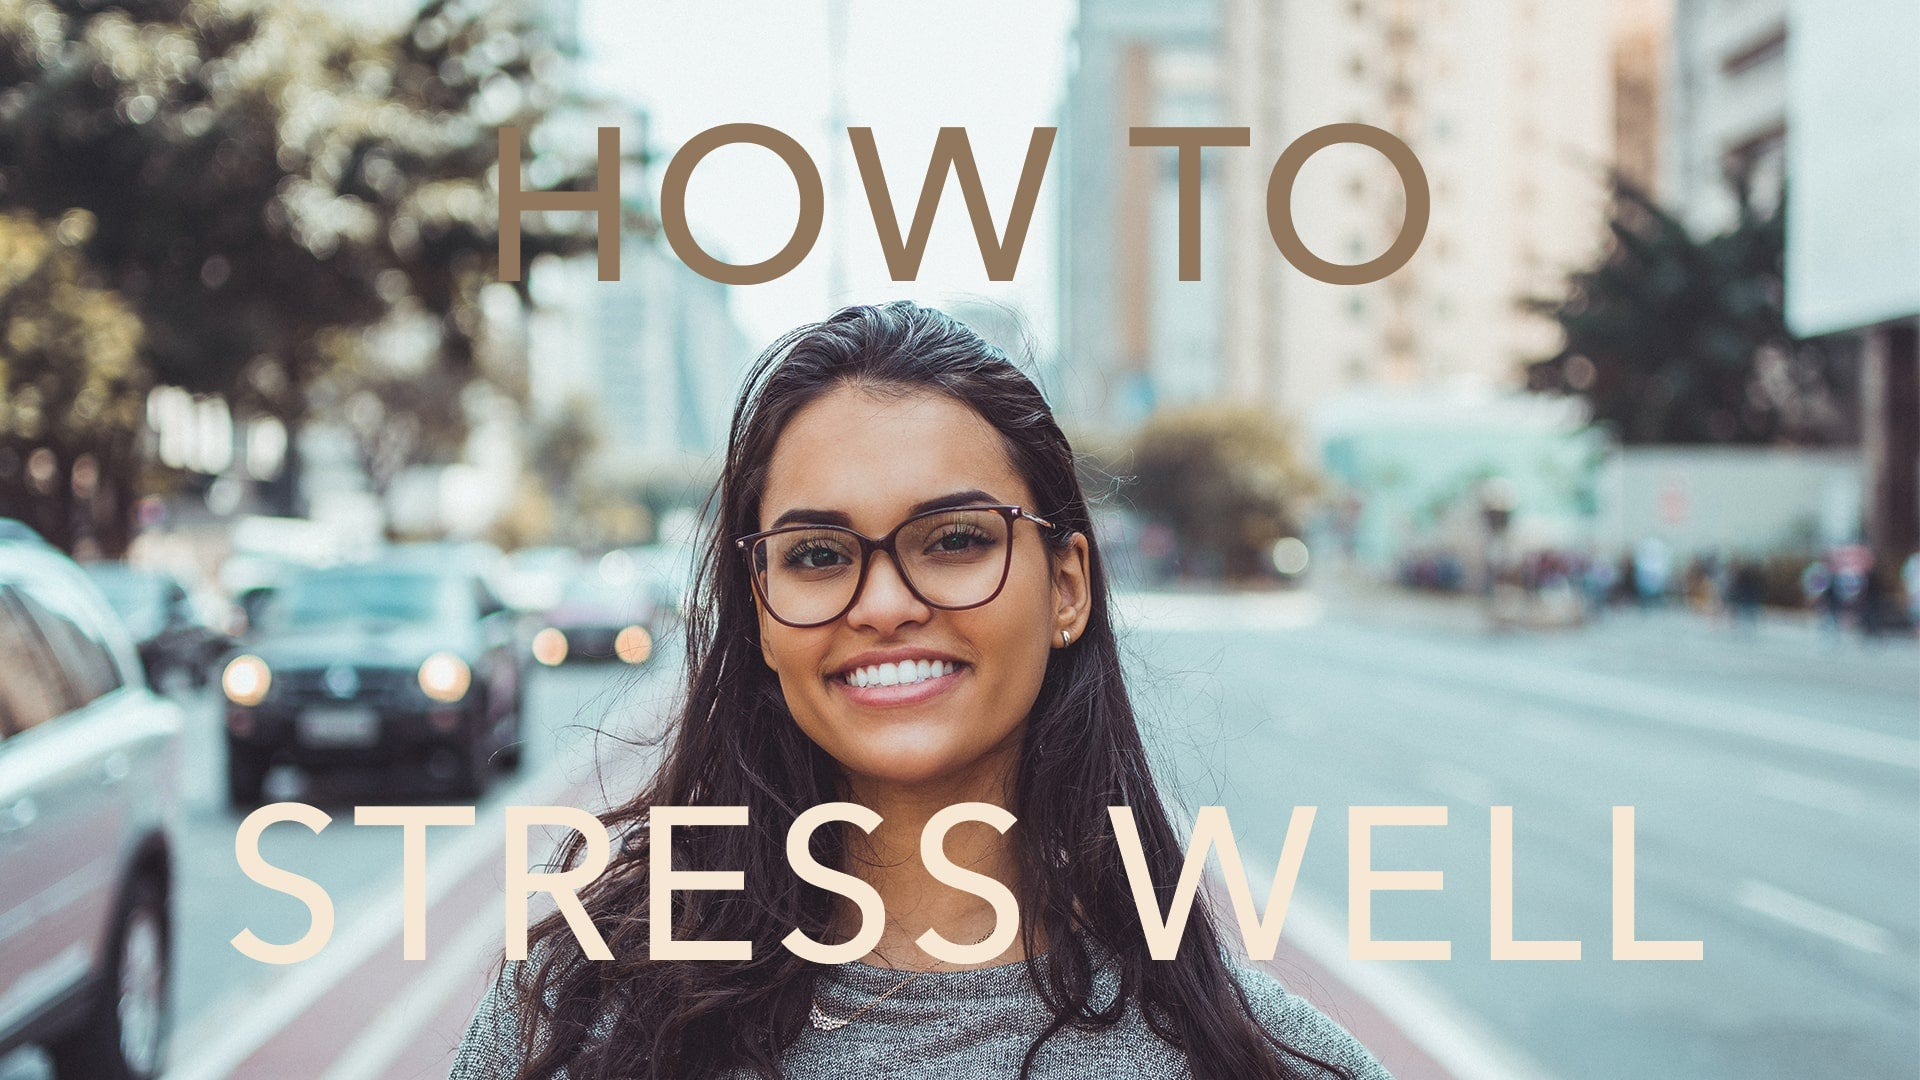 how to stress well with girl smiling